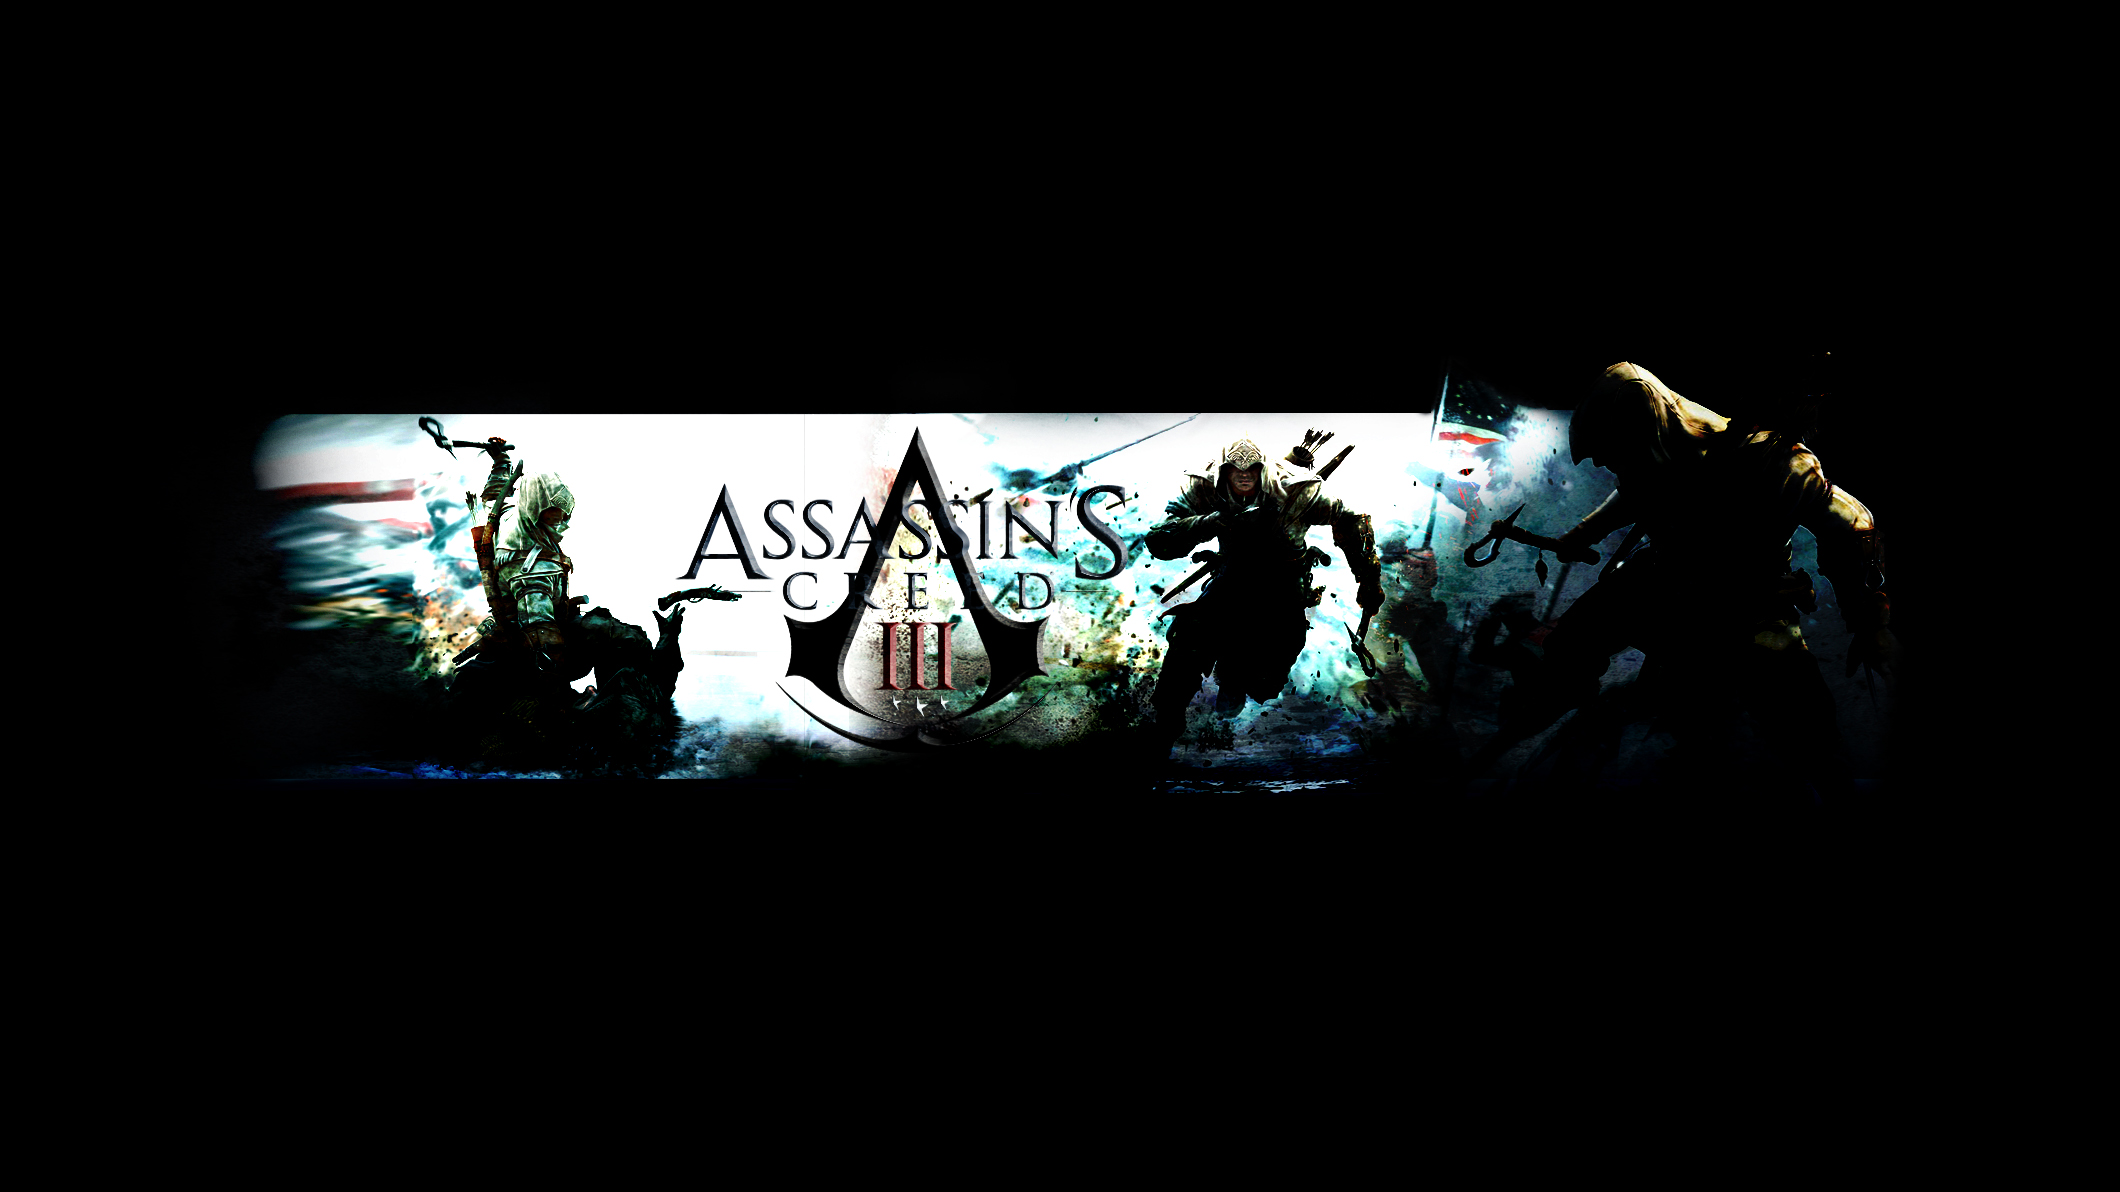 Assassin S Creed 3 Youtube Background By Thepoweroffive On Deviantart